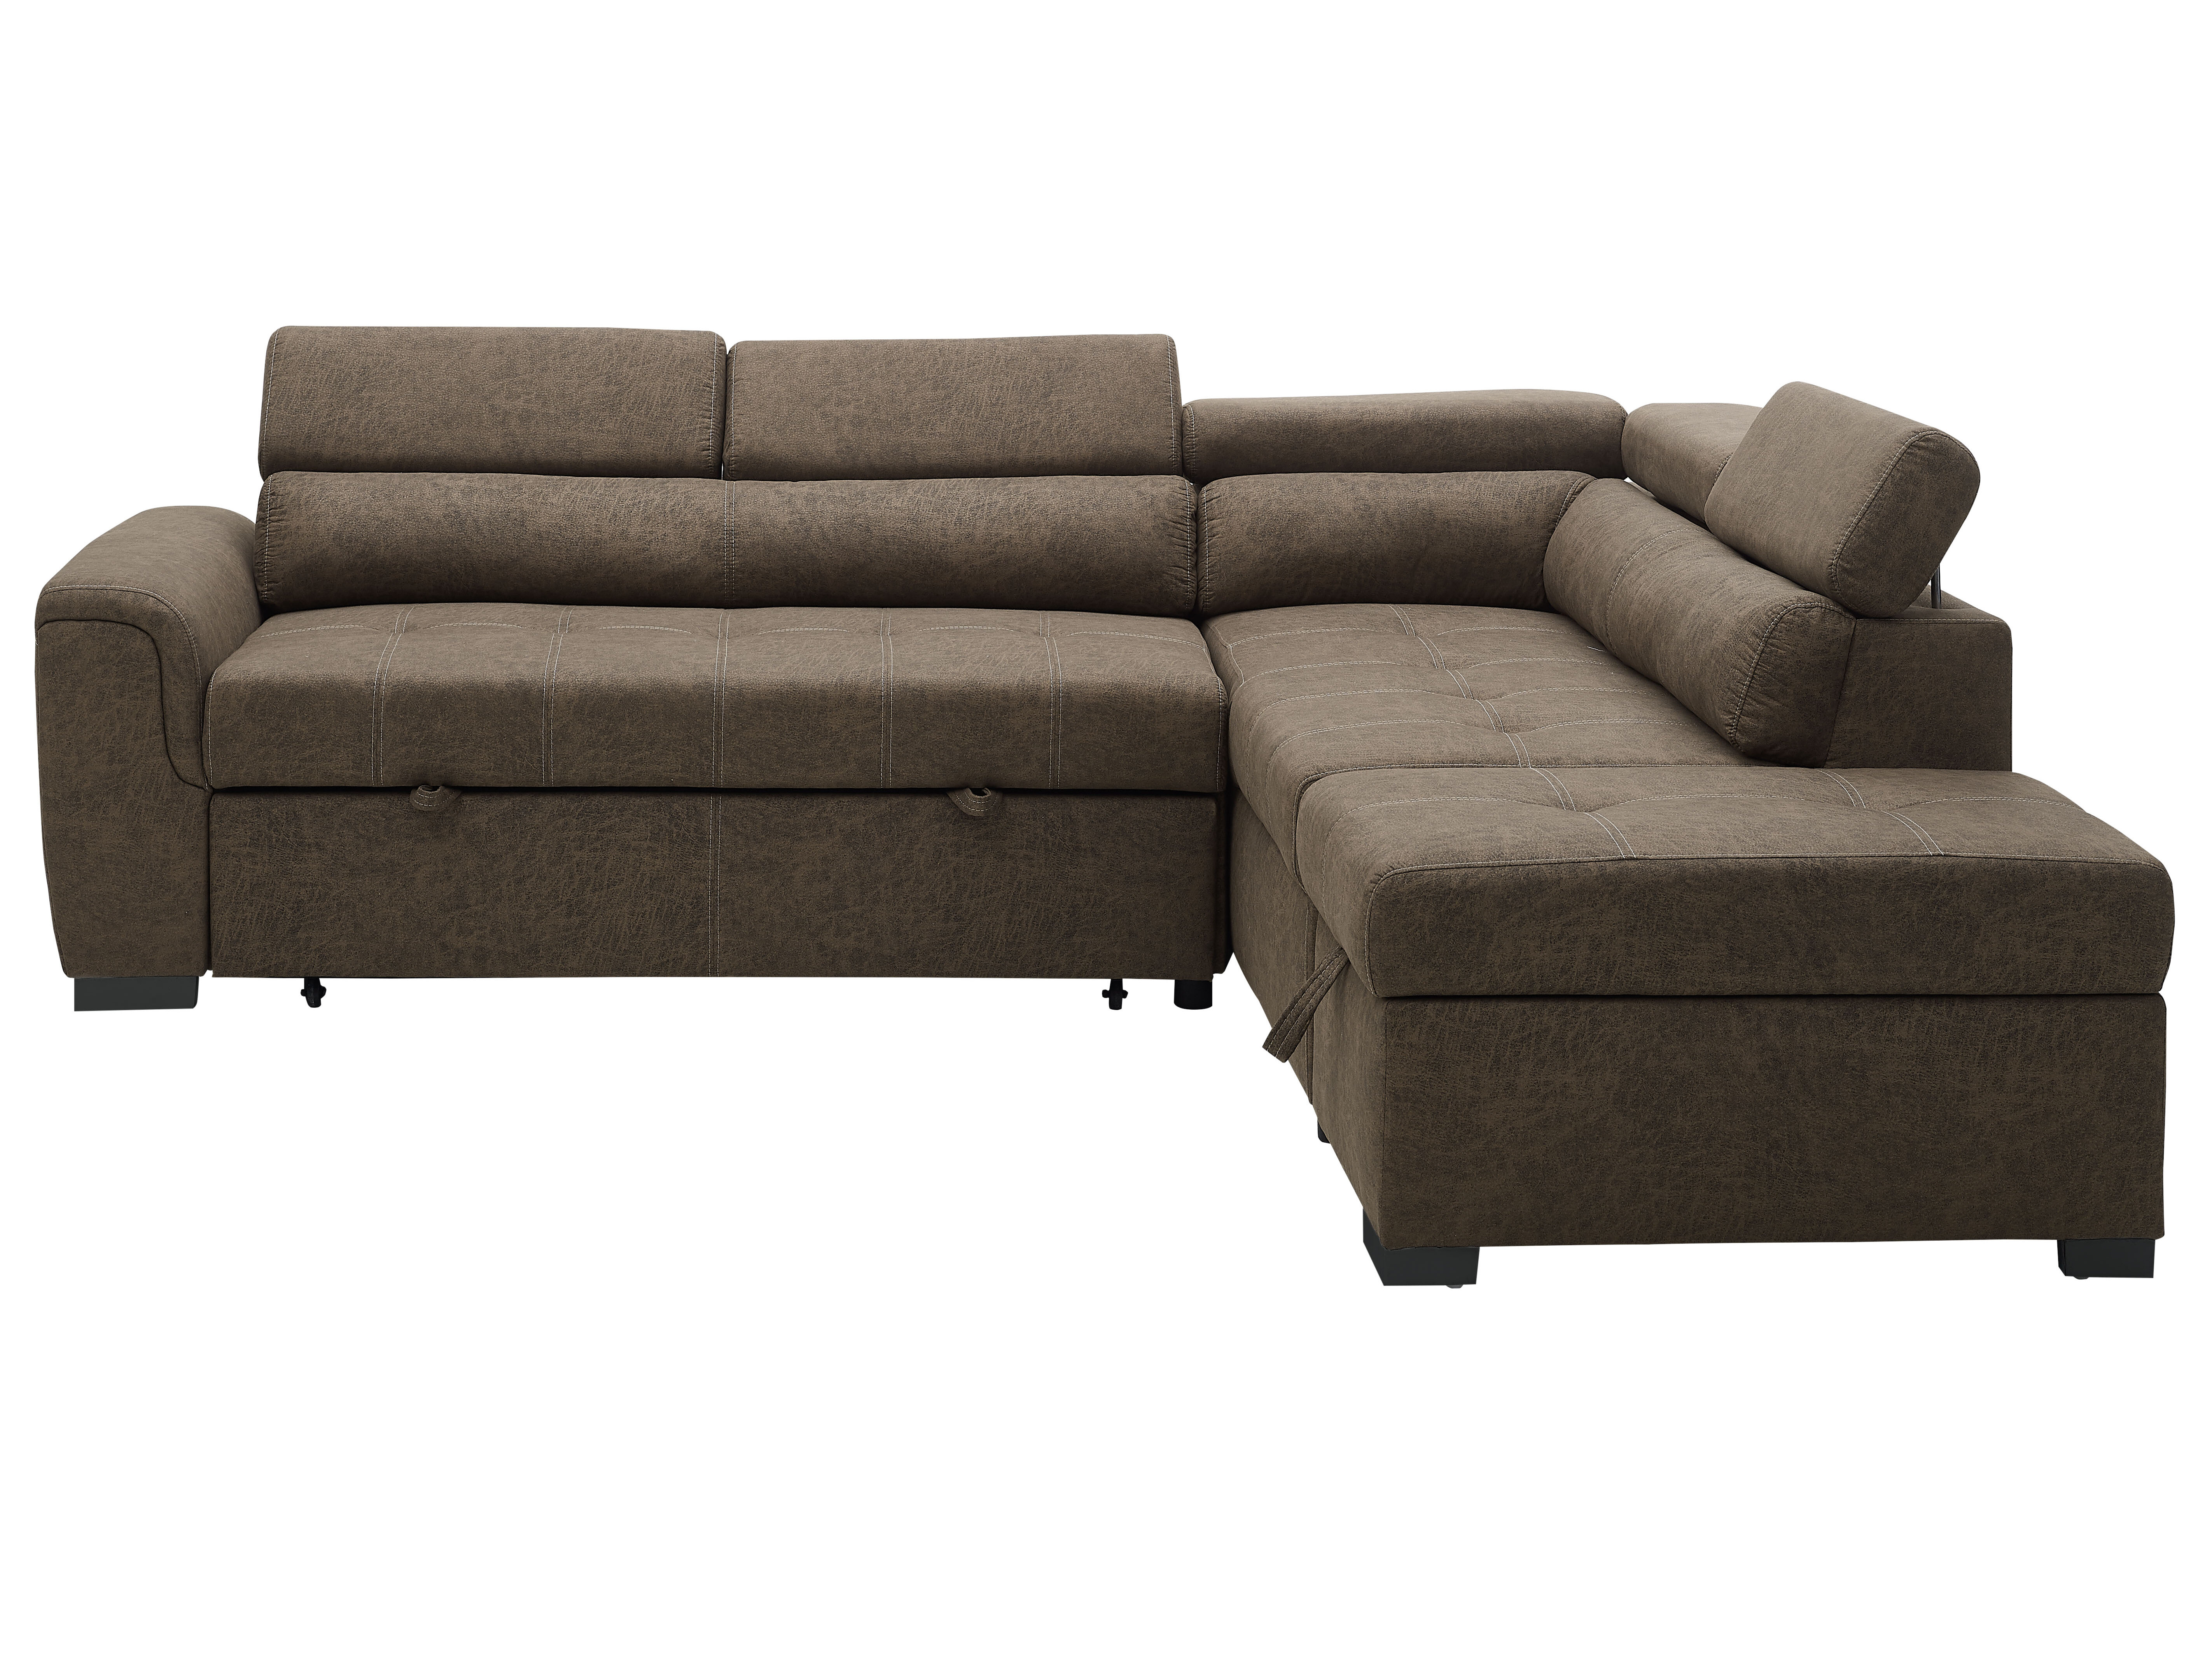 Kegan Leather Right Hand Facing Sleeper Sectional With Storage Ottoman